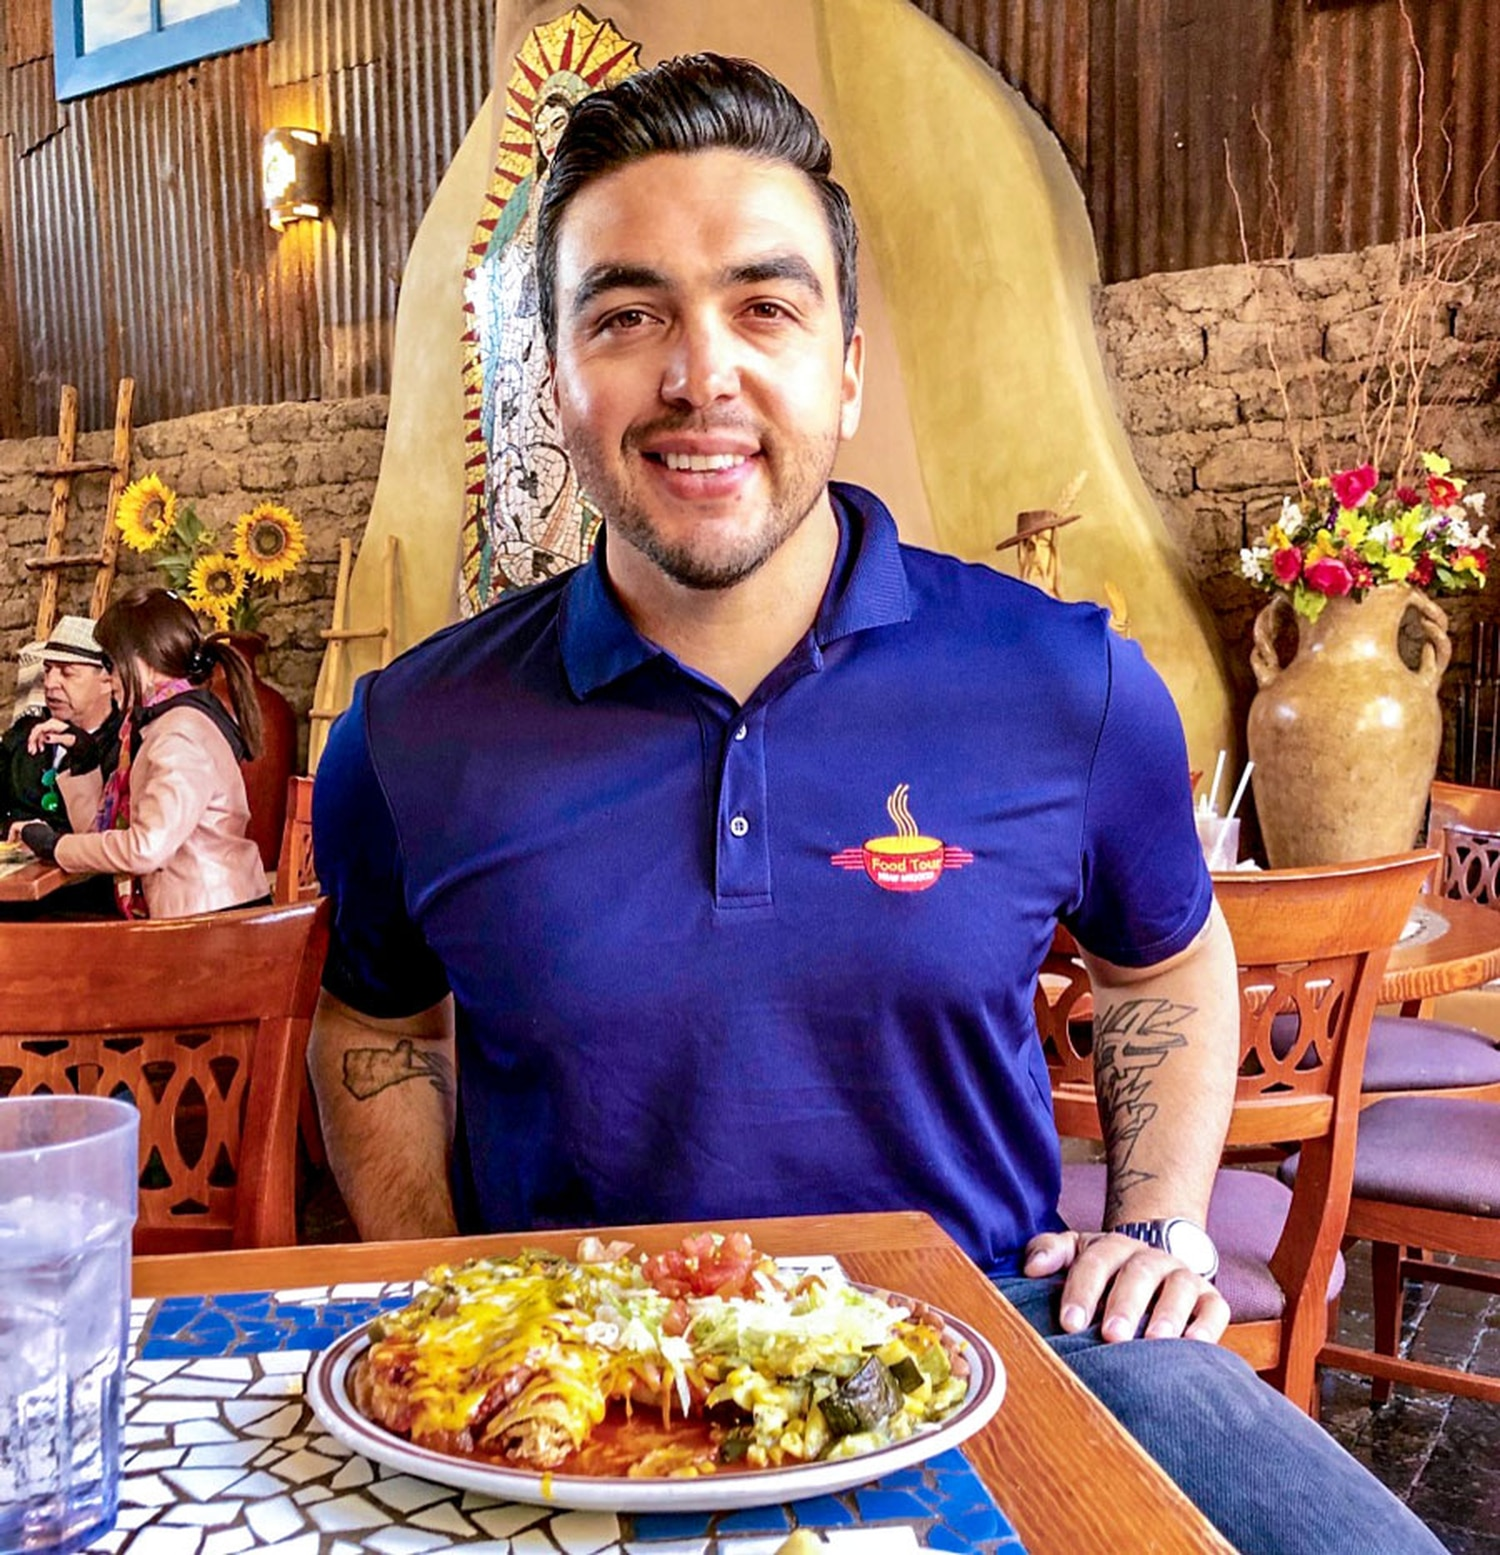 Nick Peña loves food more than you do, but he's willing to share.